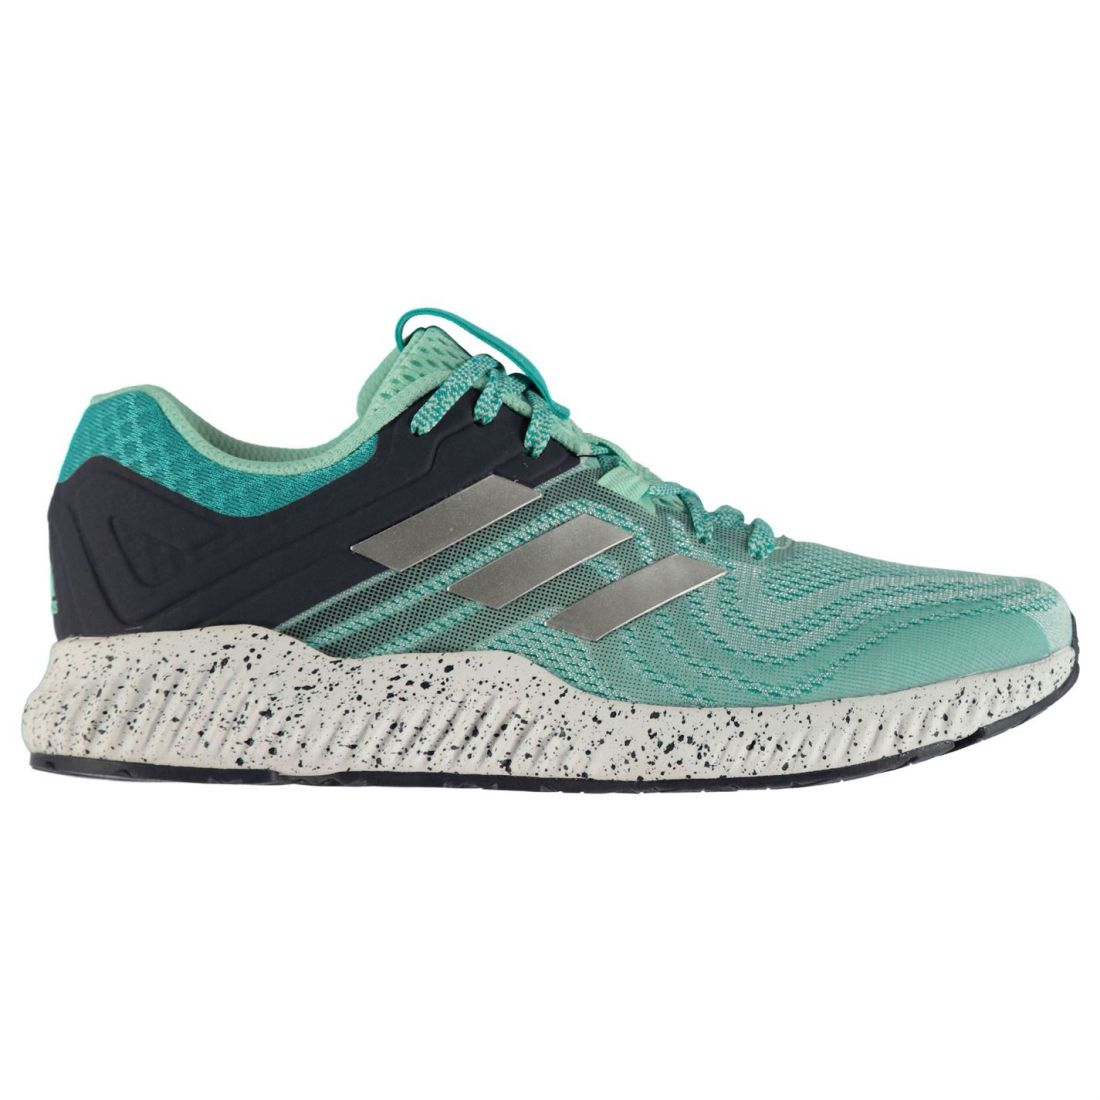 adidas Aerobounce ST 2 Running Shoes Ladies Road Laces ... 12822396d